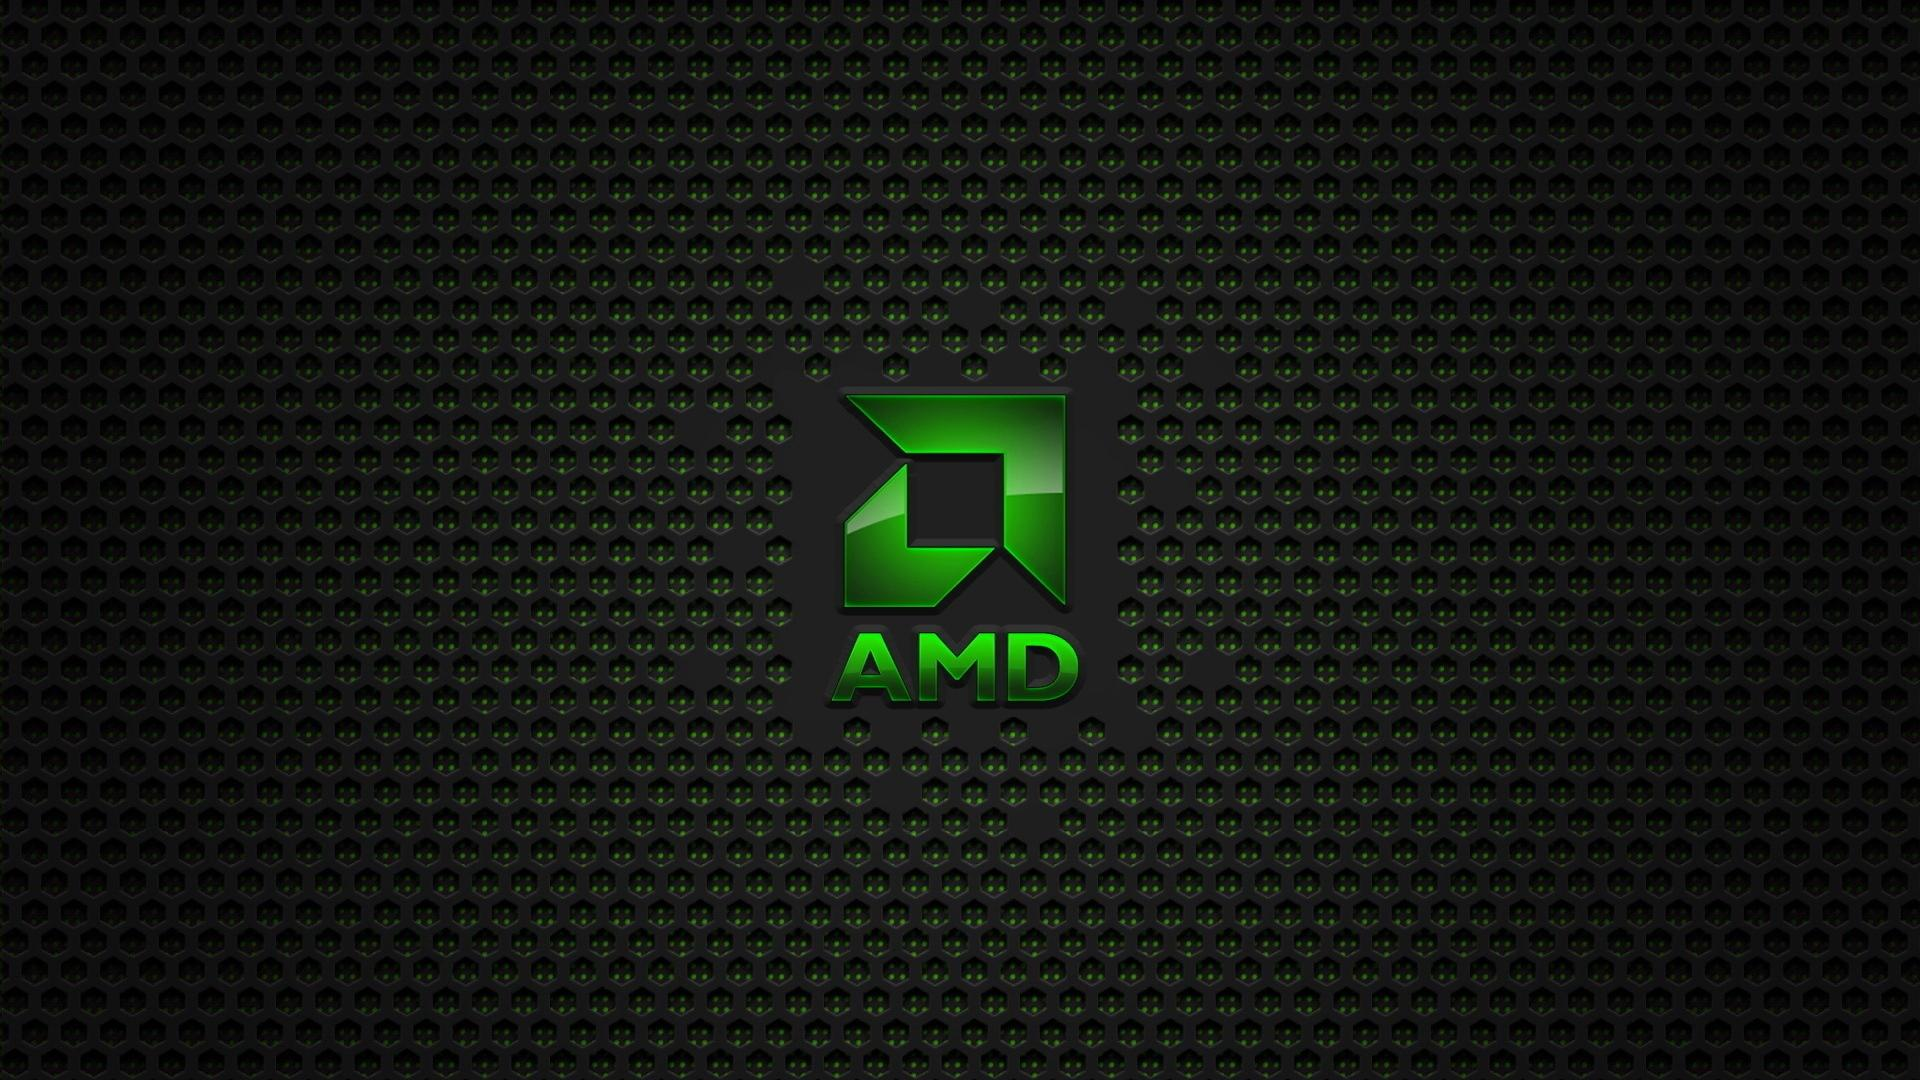 Download Amd Wallpaper 1920x1080 Hd Backgrounds Download